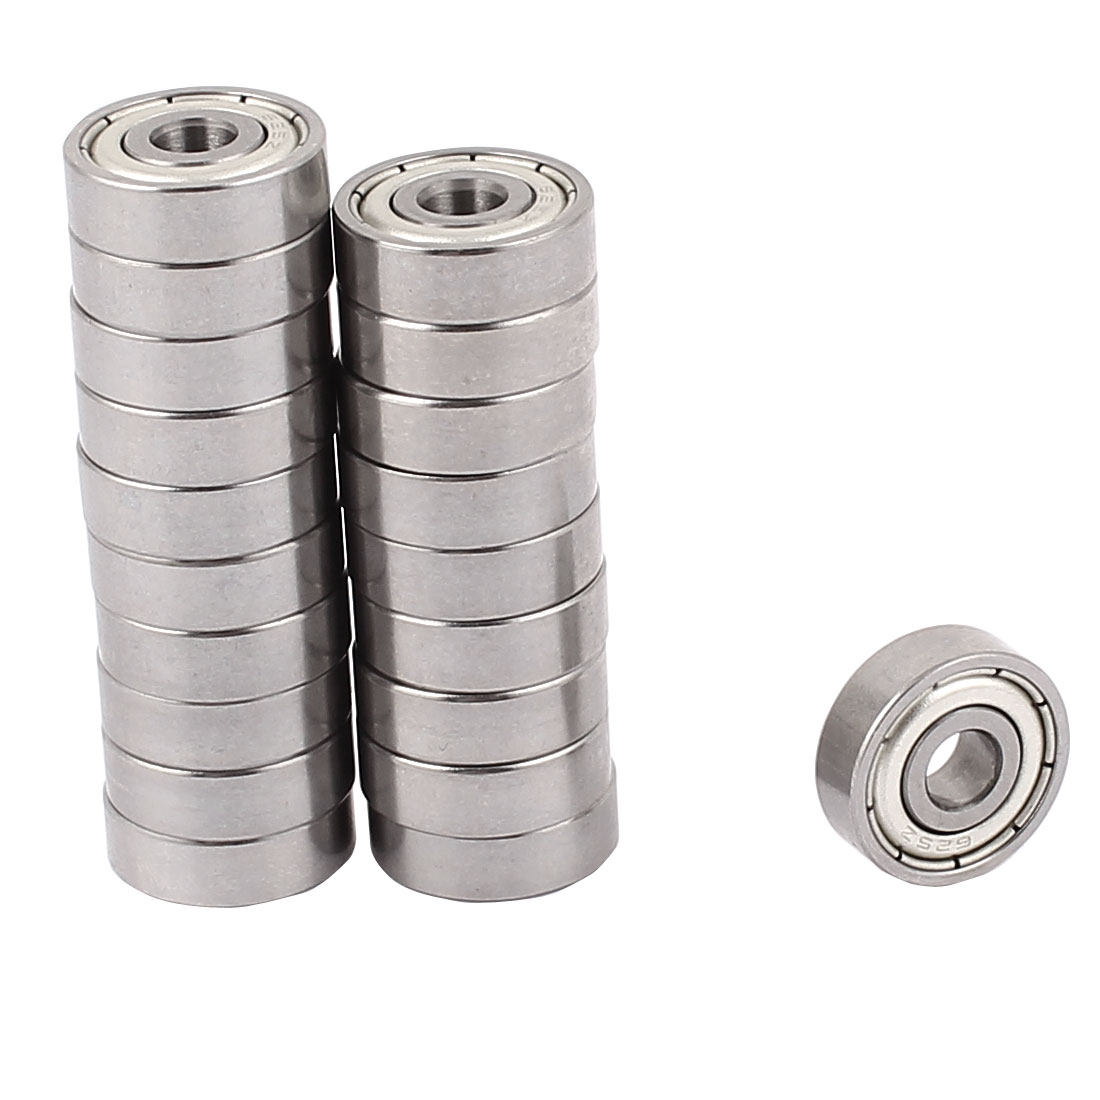 20 Pcs 5mmx16mmx5.5mm Metal Sealed Shielded Deep Groove Ball Bearing for Skateboard